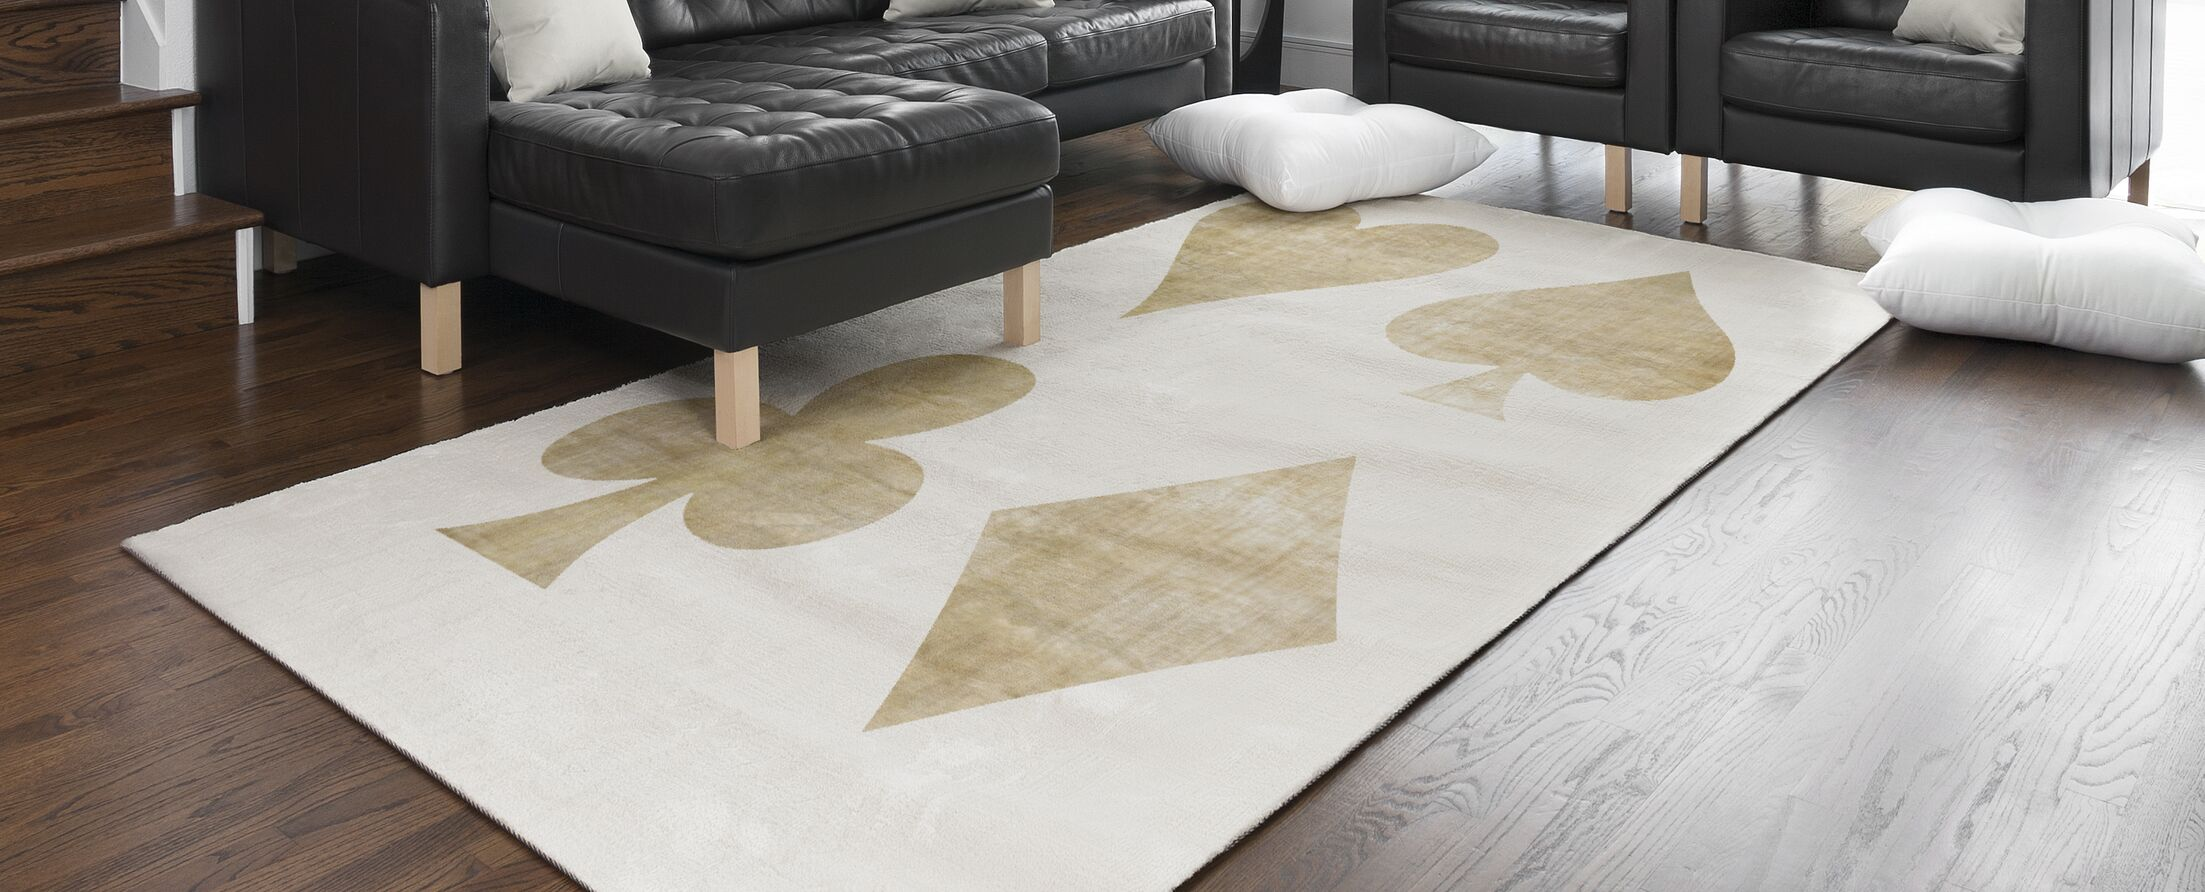 Hadrian Playing Cards Beige/Gold Area Rug Rug Size: Rectangle 5' x 7'